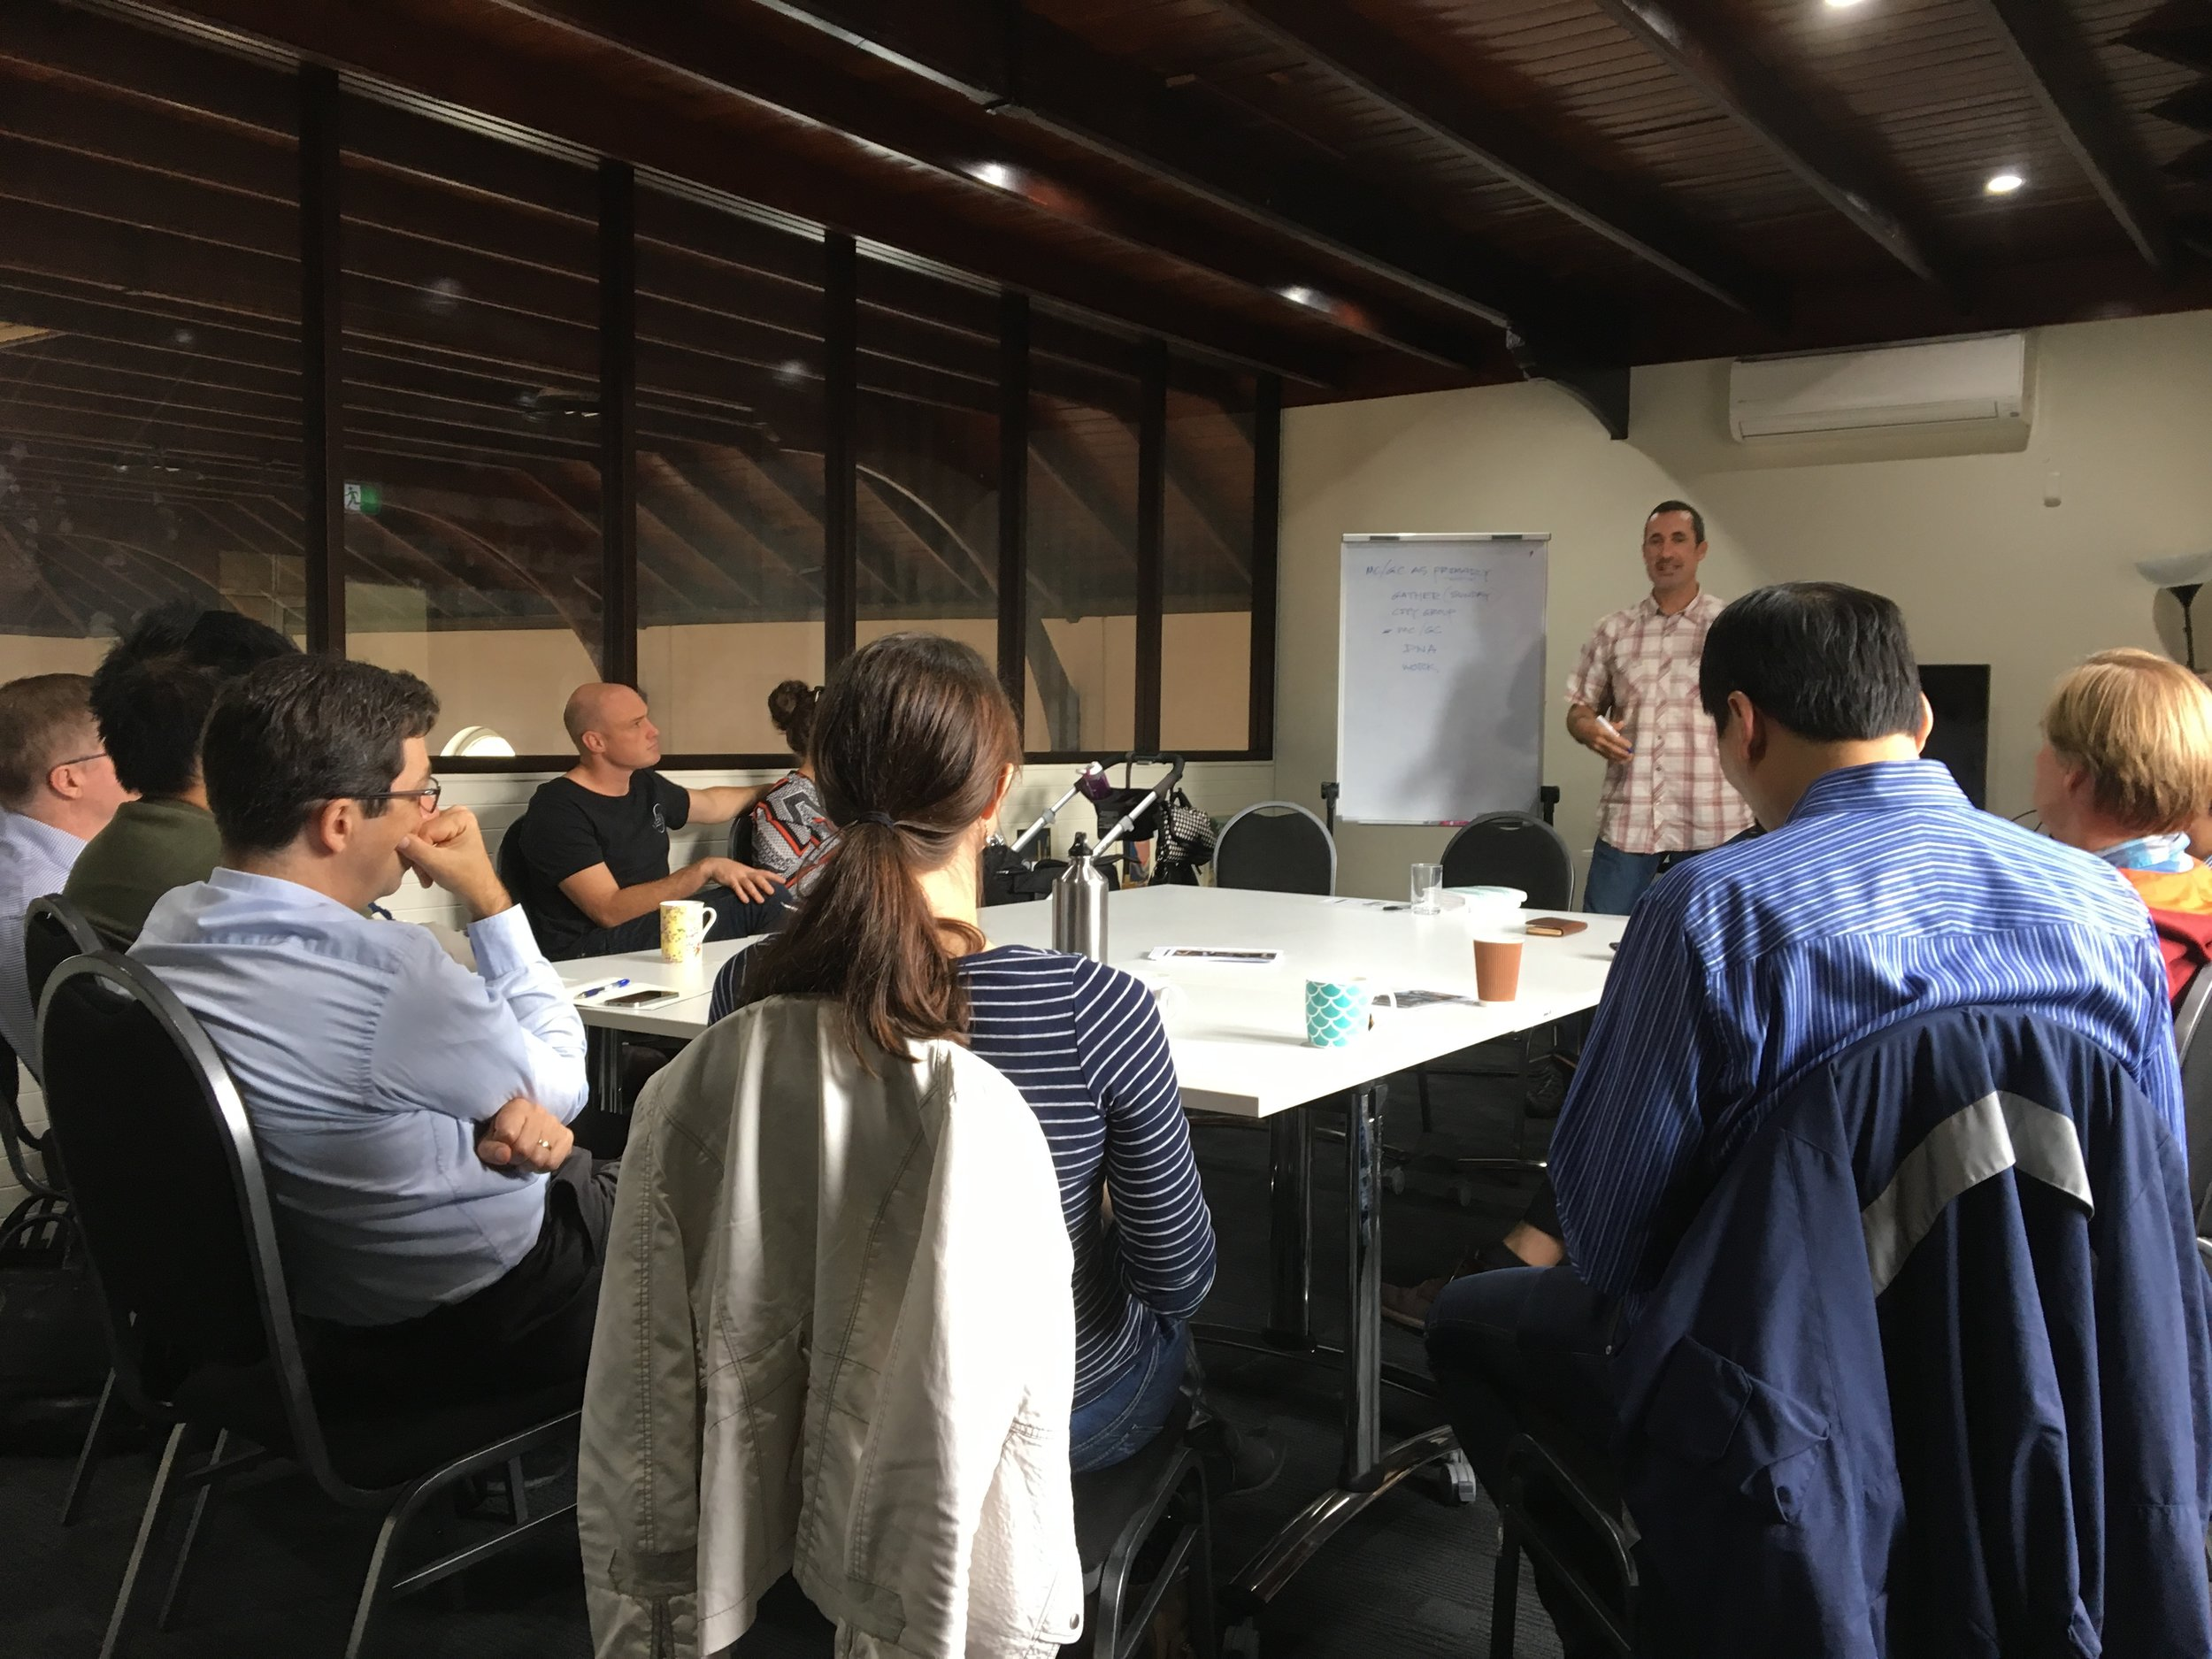 Todd Morr shares his thoughts on missional communities with members of City to City Australia's network of churches.